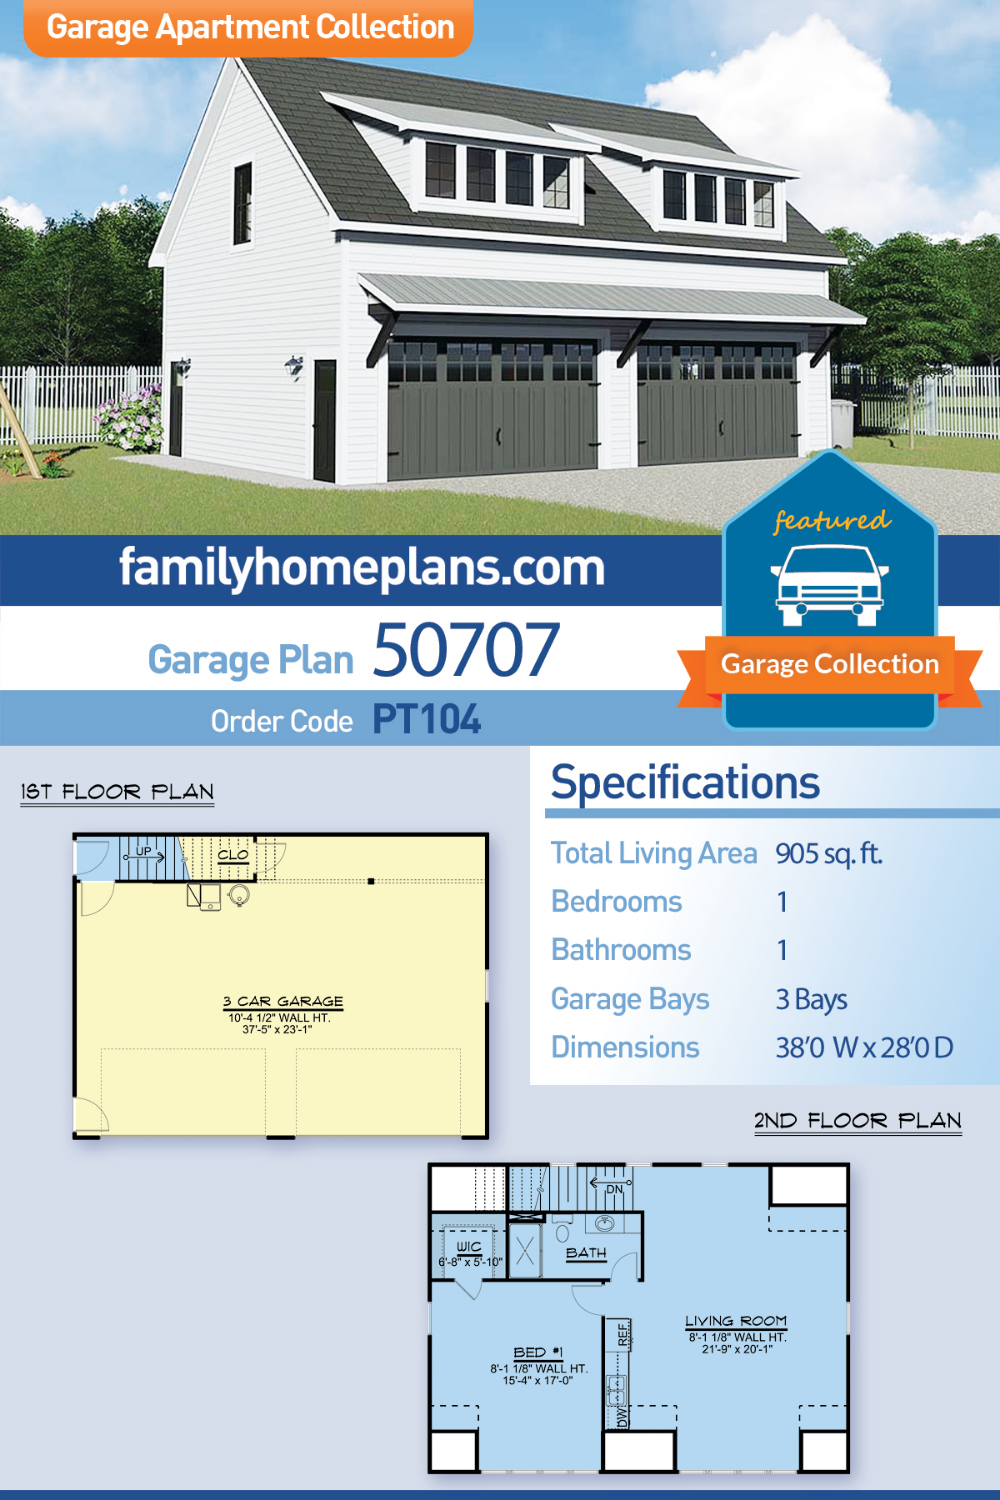 Contemporary Style 3 Car Garage Apartment Plan Number 50707 With 1 Bed 1 Bath Garage Guest House Guest House Plans Carriage House Plans